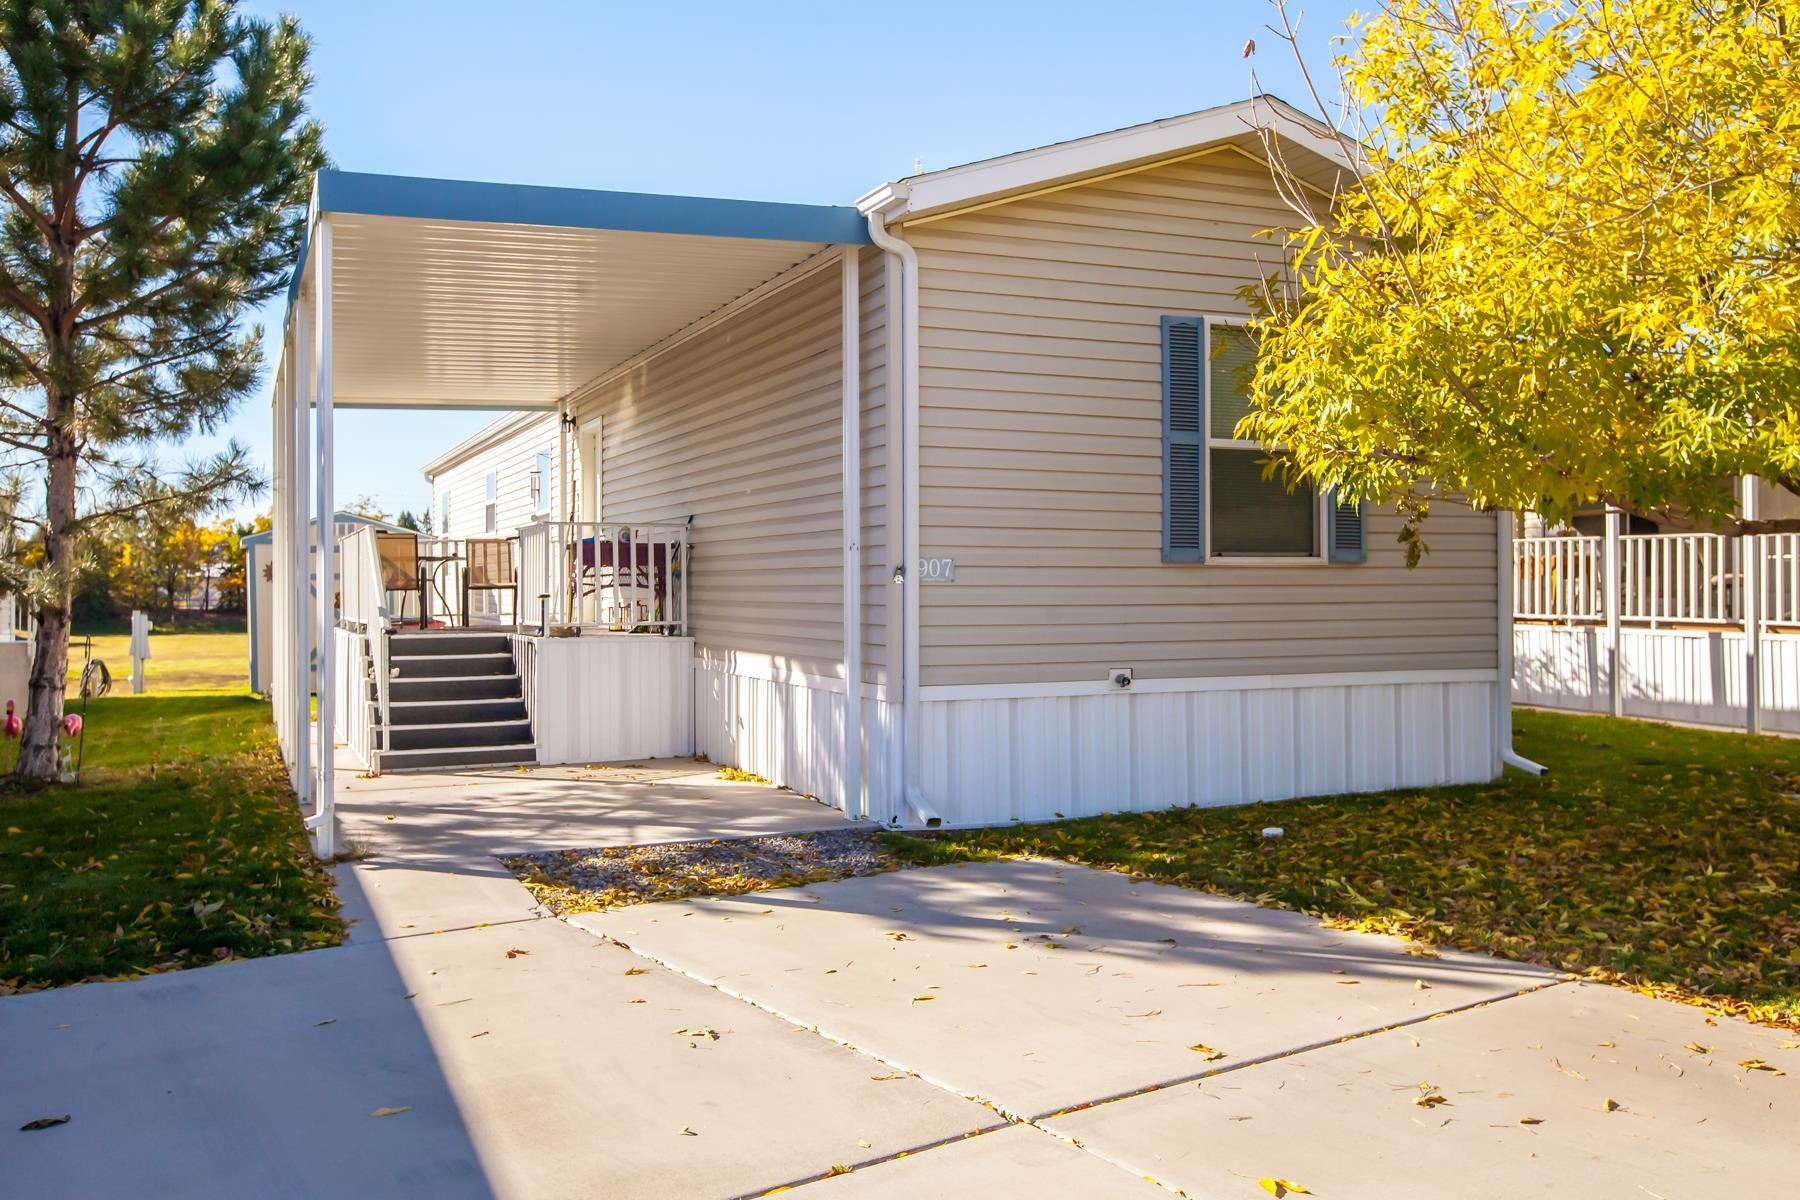 Photo of 435 32 Road #907, Clifton, CO 81520 (MLS # 20215736)